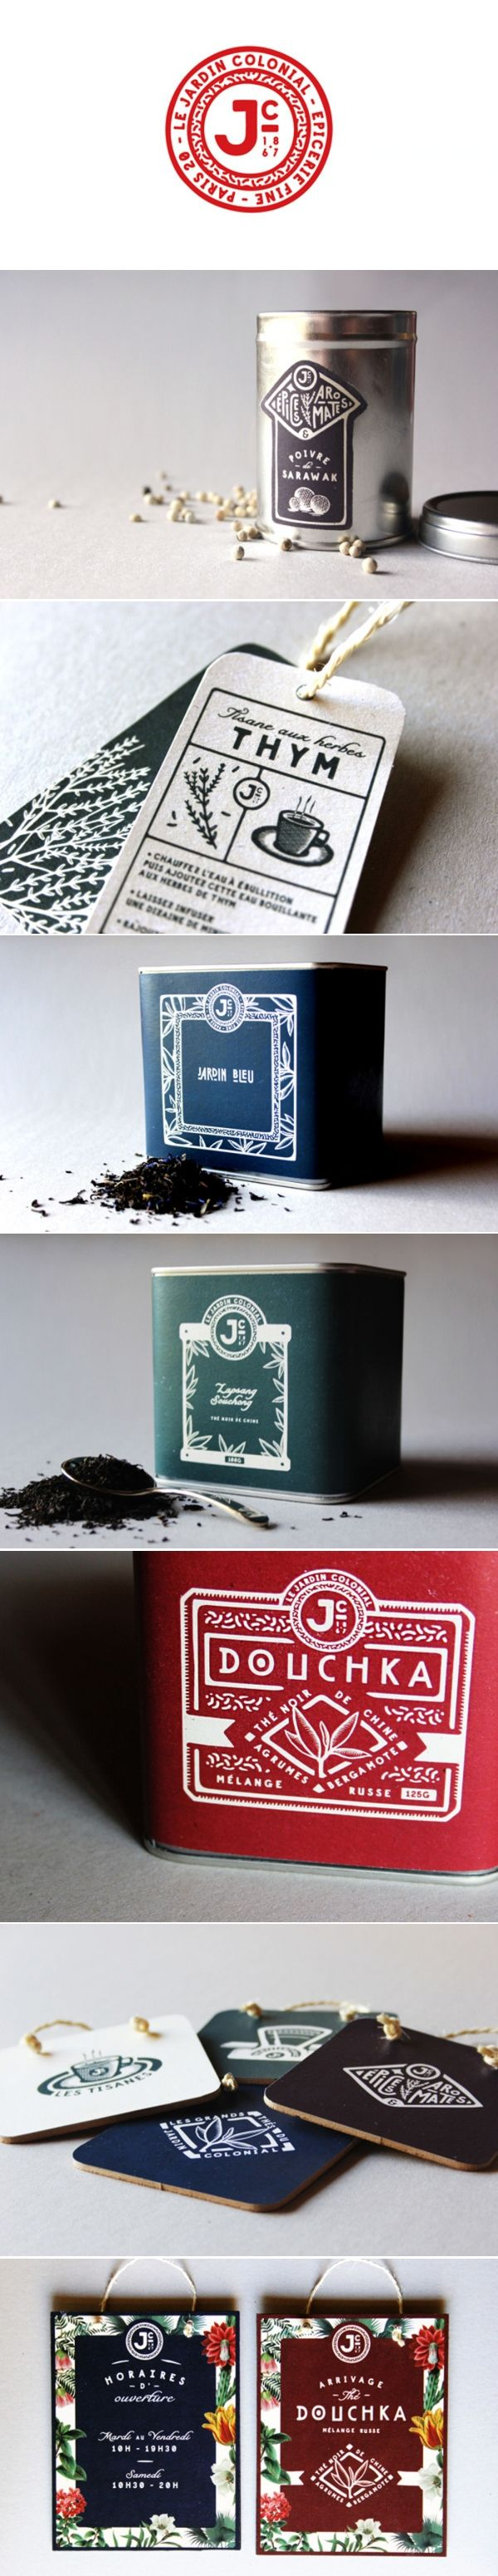 Le Jardin Colonial: concept identity & packaging / by Adrien Grand Smith Bianchi